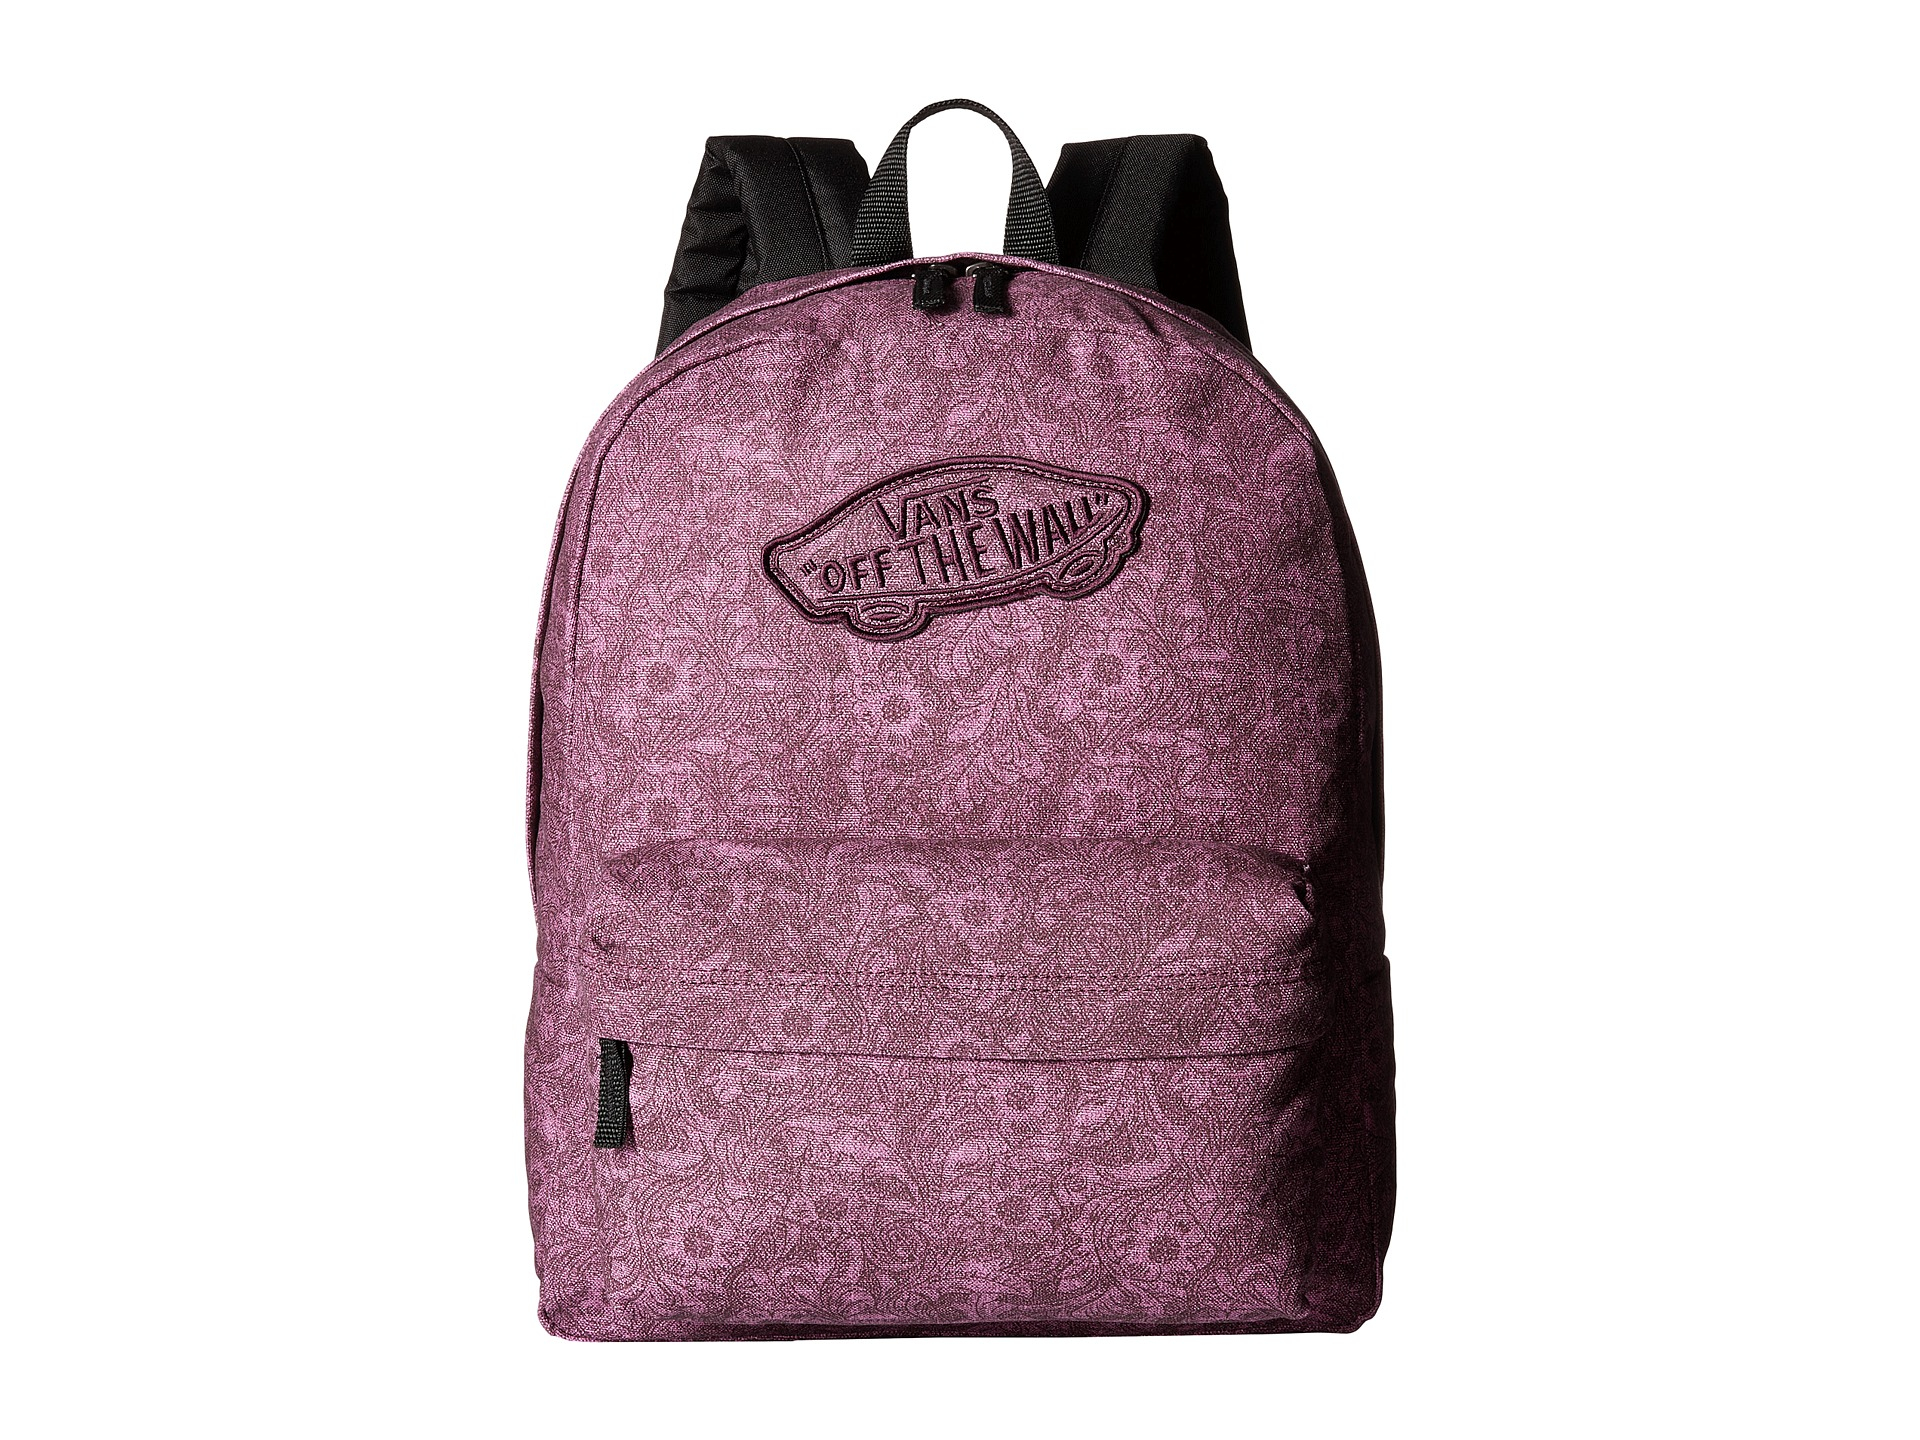 Lyst - Vans Realm Backpack in Purple